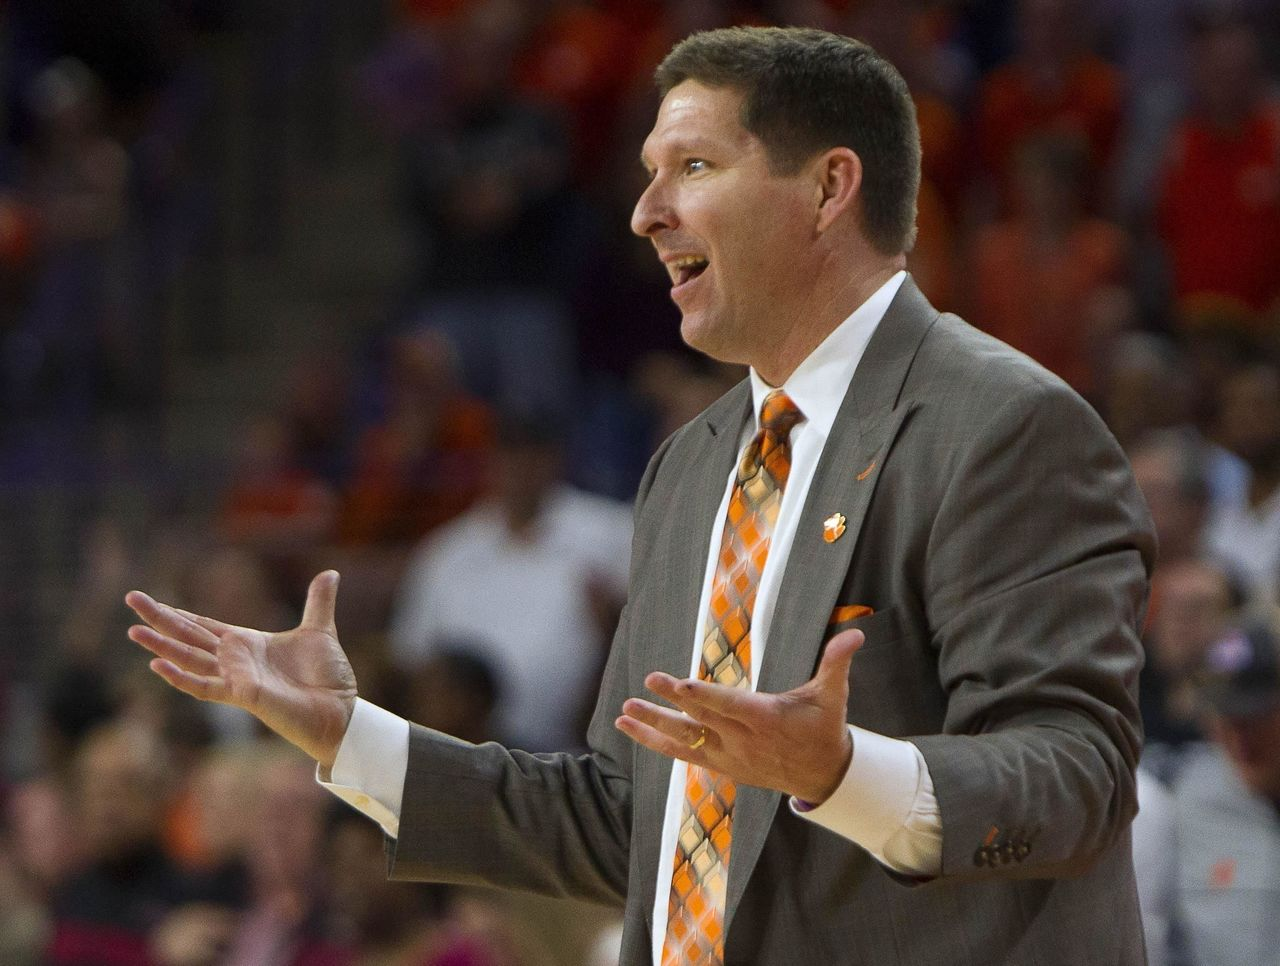 Cropped 2017 02 25t193443z 1169889571 nocid rtrmadp 3 ncaa basketball florida state at clemson